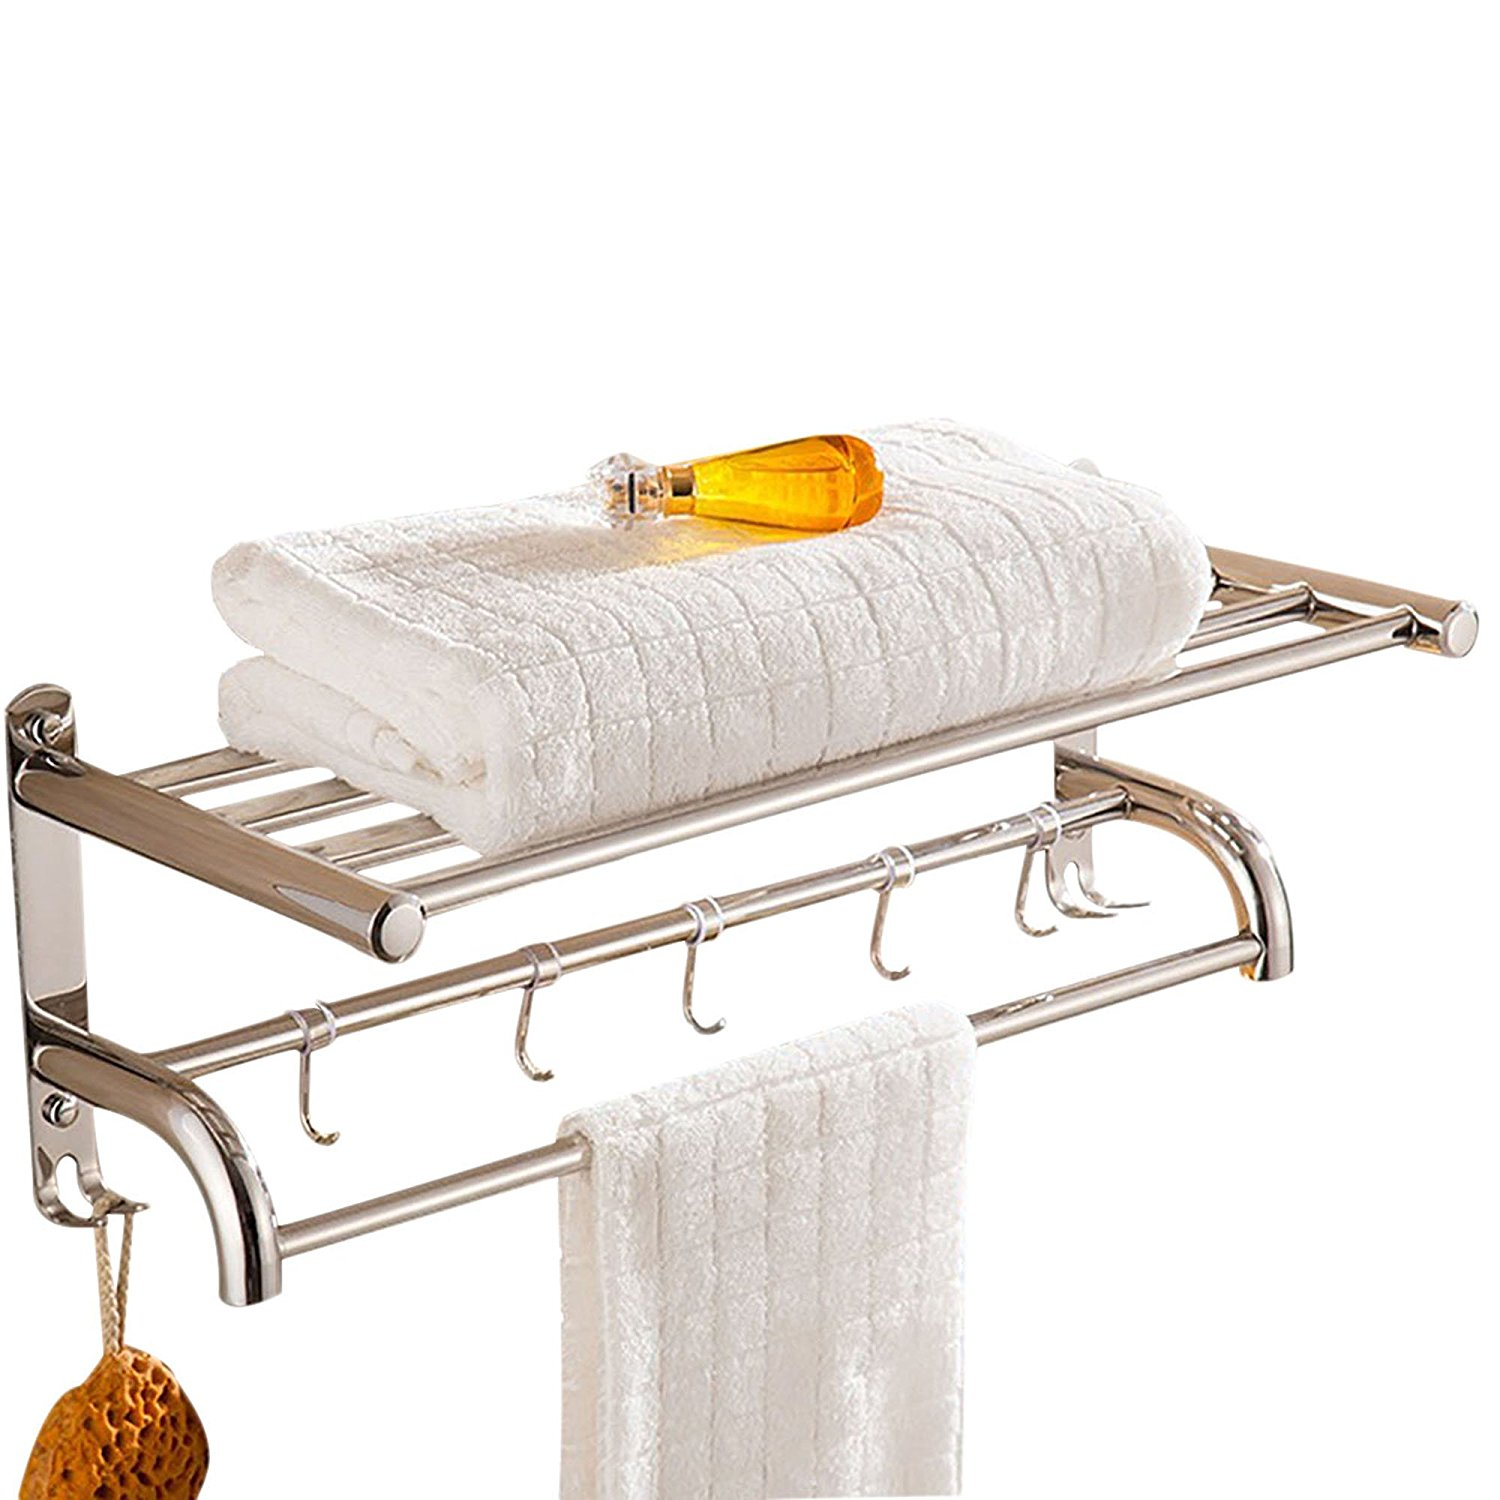 "Spring fever Bathroom Double Towel Shelf, 20"" Wall Mounted Towel Rail Towel Racks with 5 Hooks, Polished Stainless Steel"